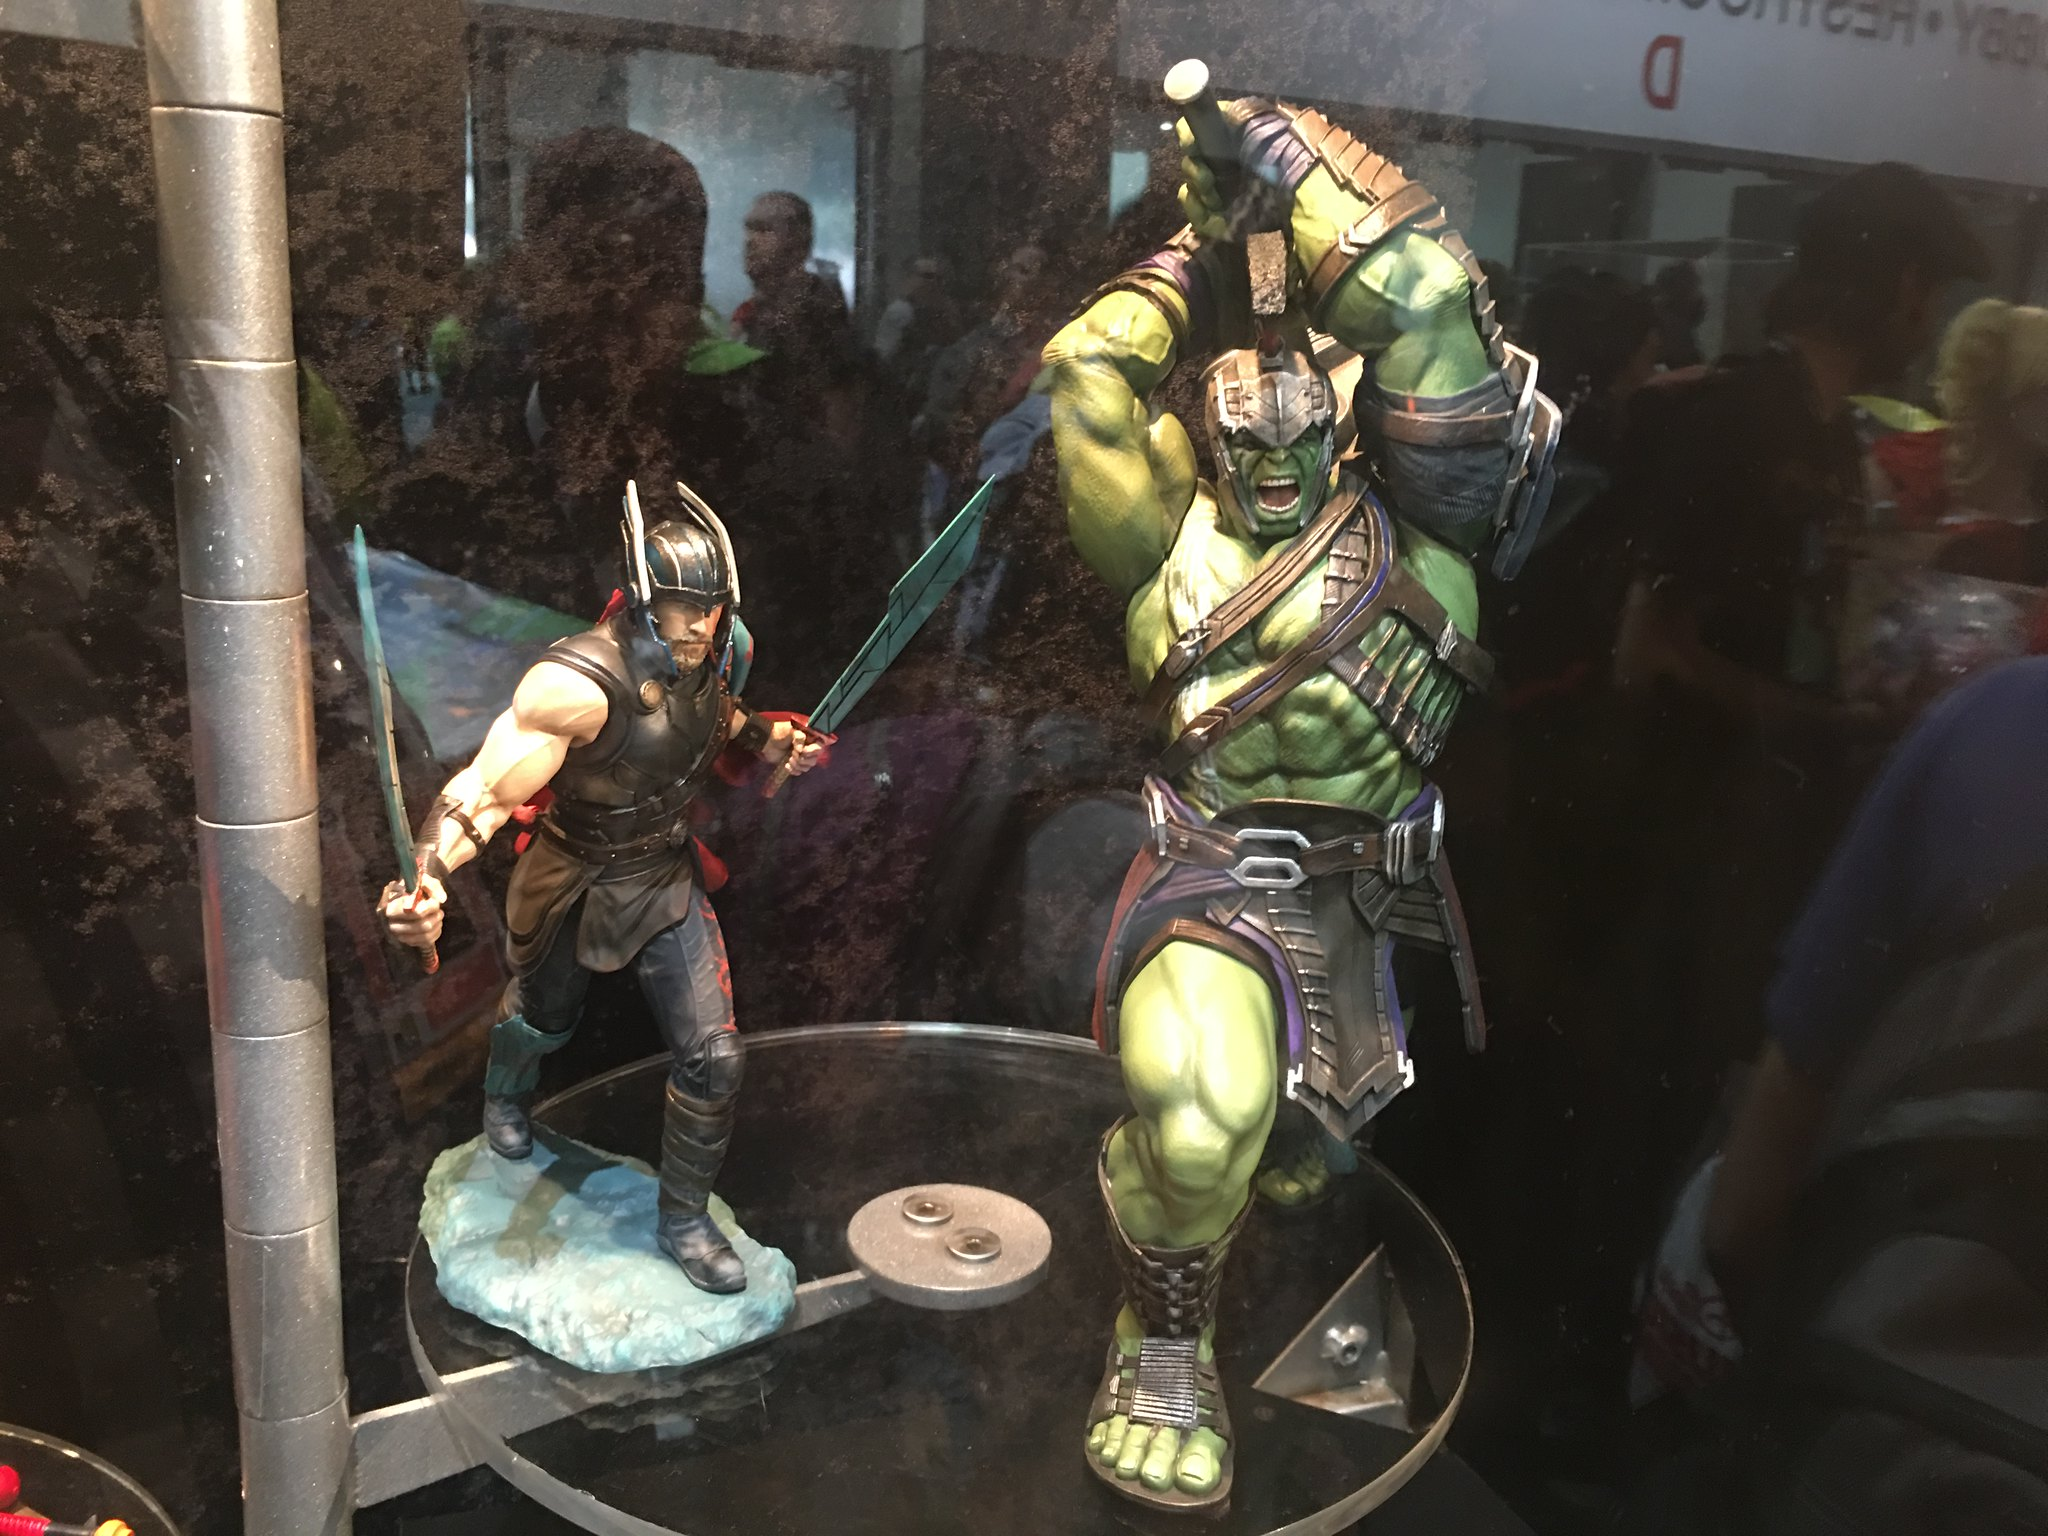 image - SDCC 2017 (collectibles 39)